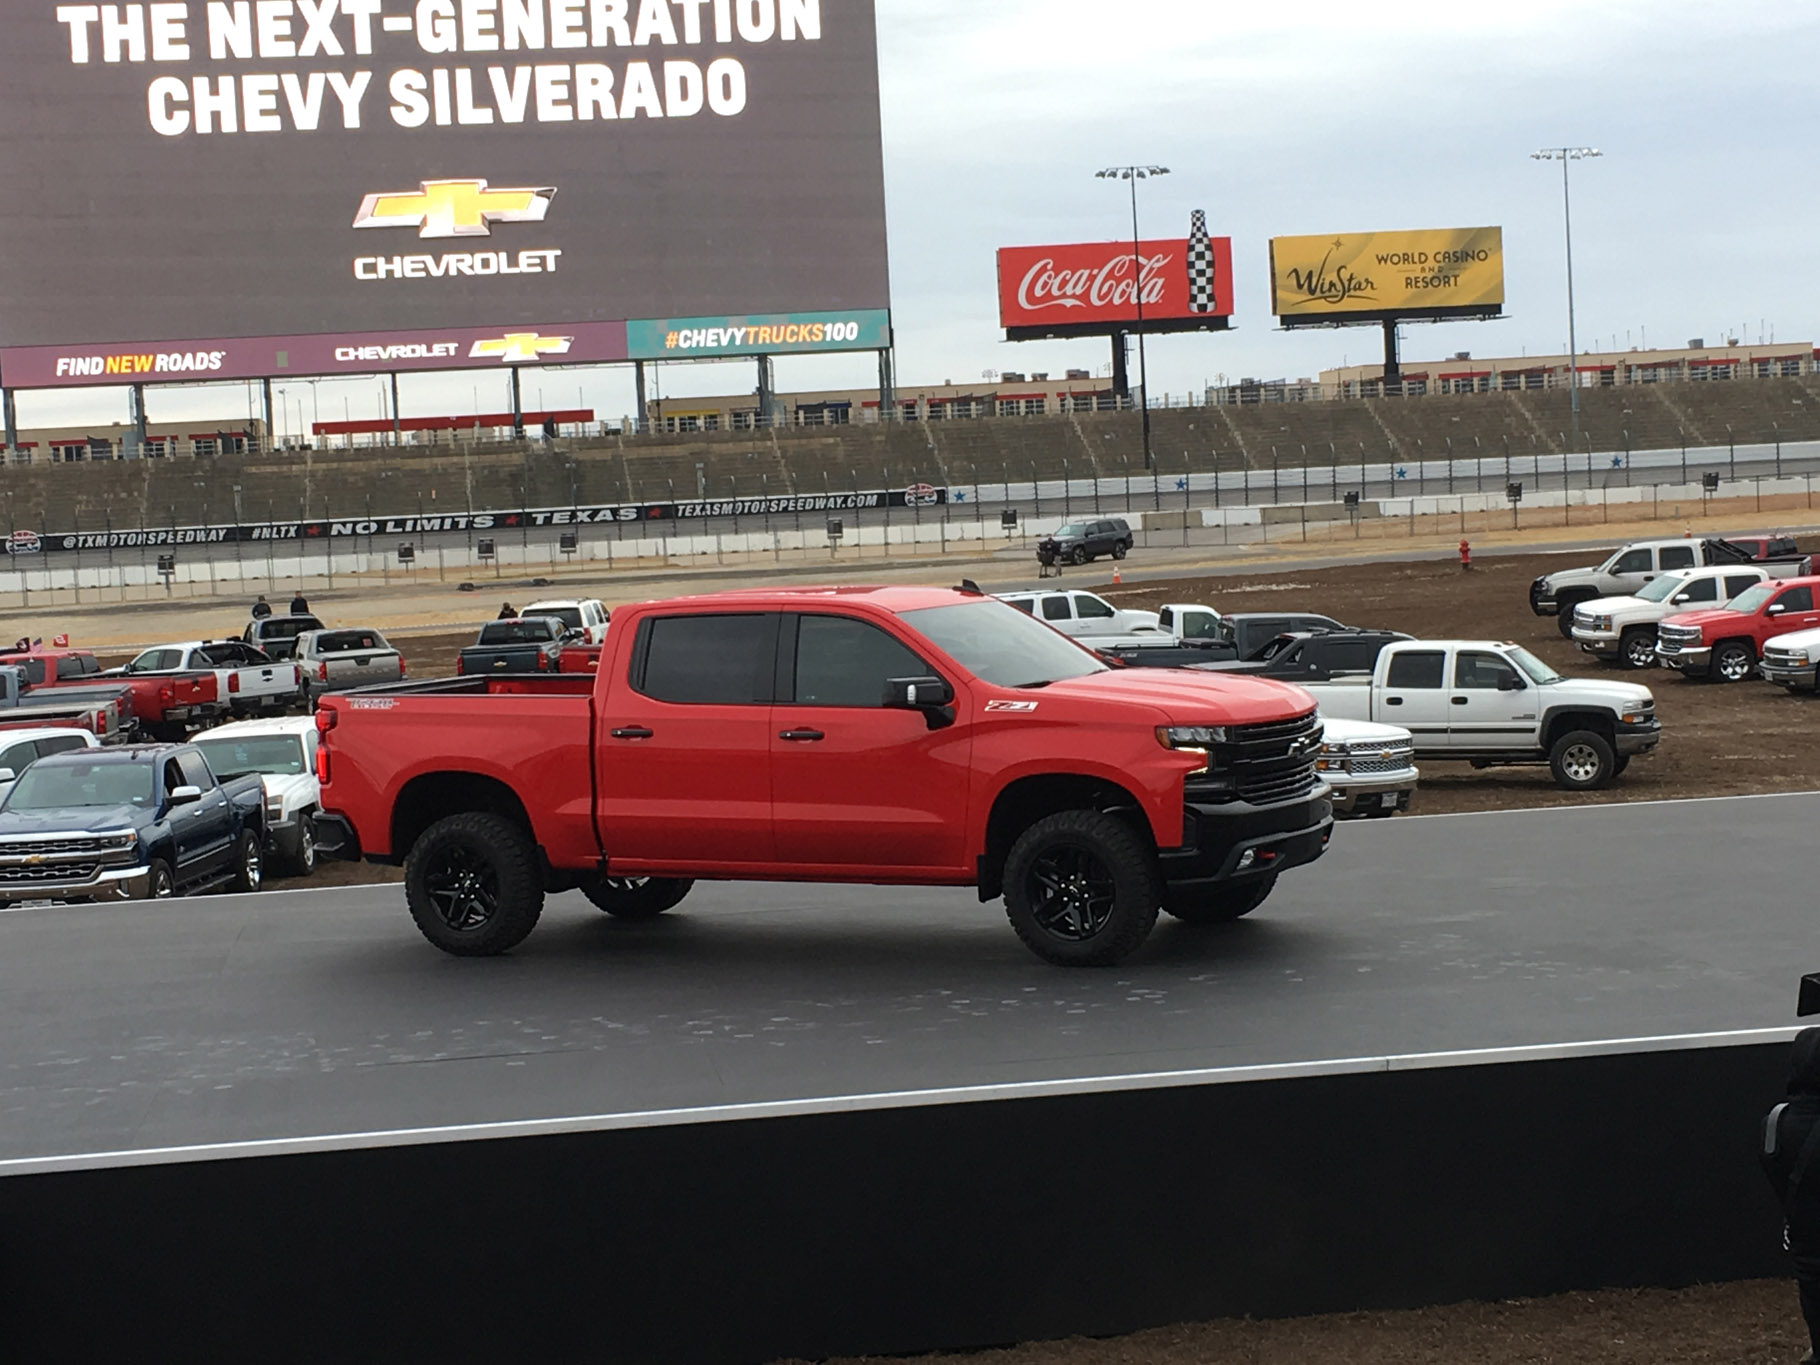 All New 2019 Chevrolet Silverado REVEALED 1 54 56 PM 1 2019 chevrolet silverado revealed via helicopter in texas